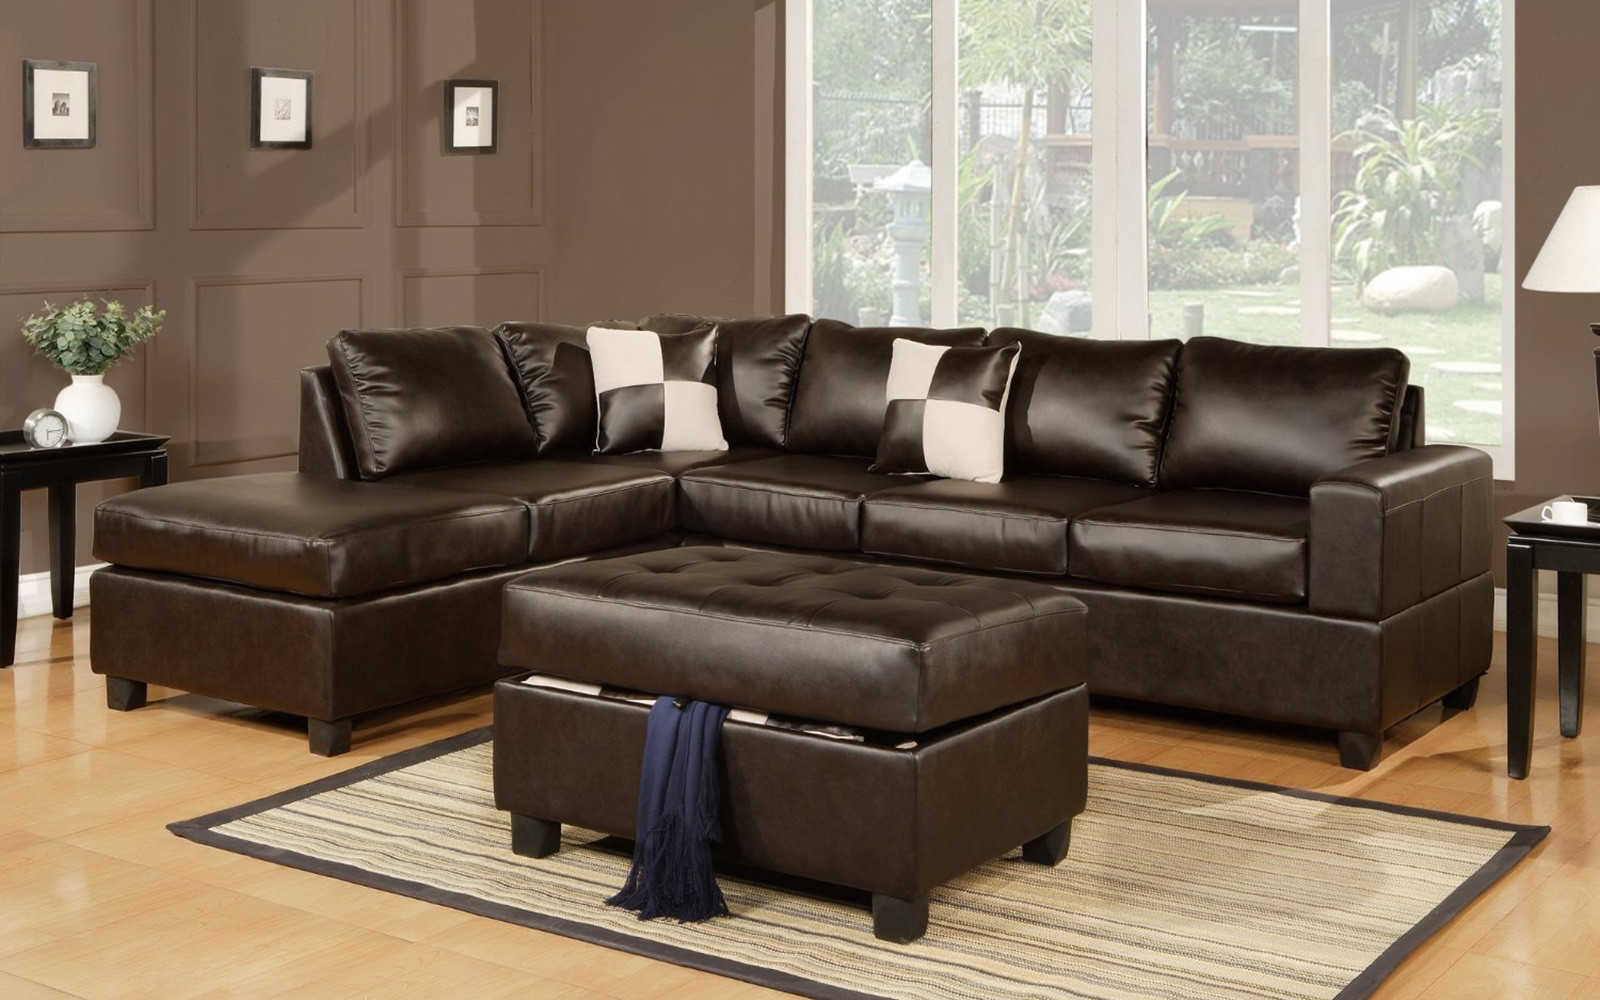 modern bonded leather sectional sofa with recliners old set in pune on olx 3 piece reversible tufted ottoman walmart com